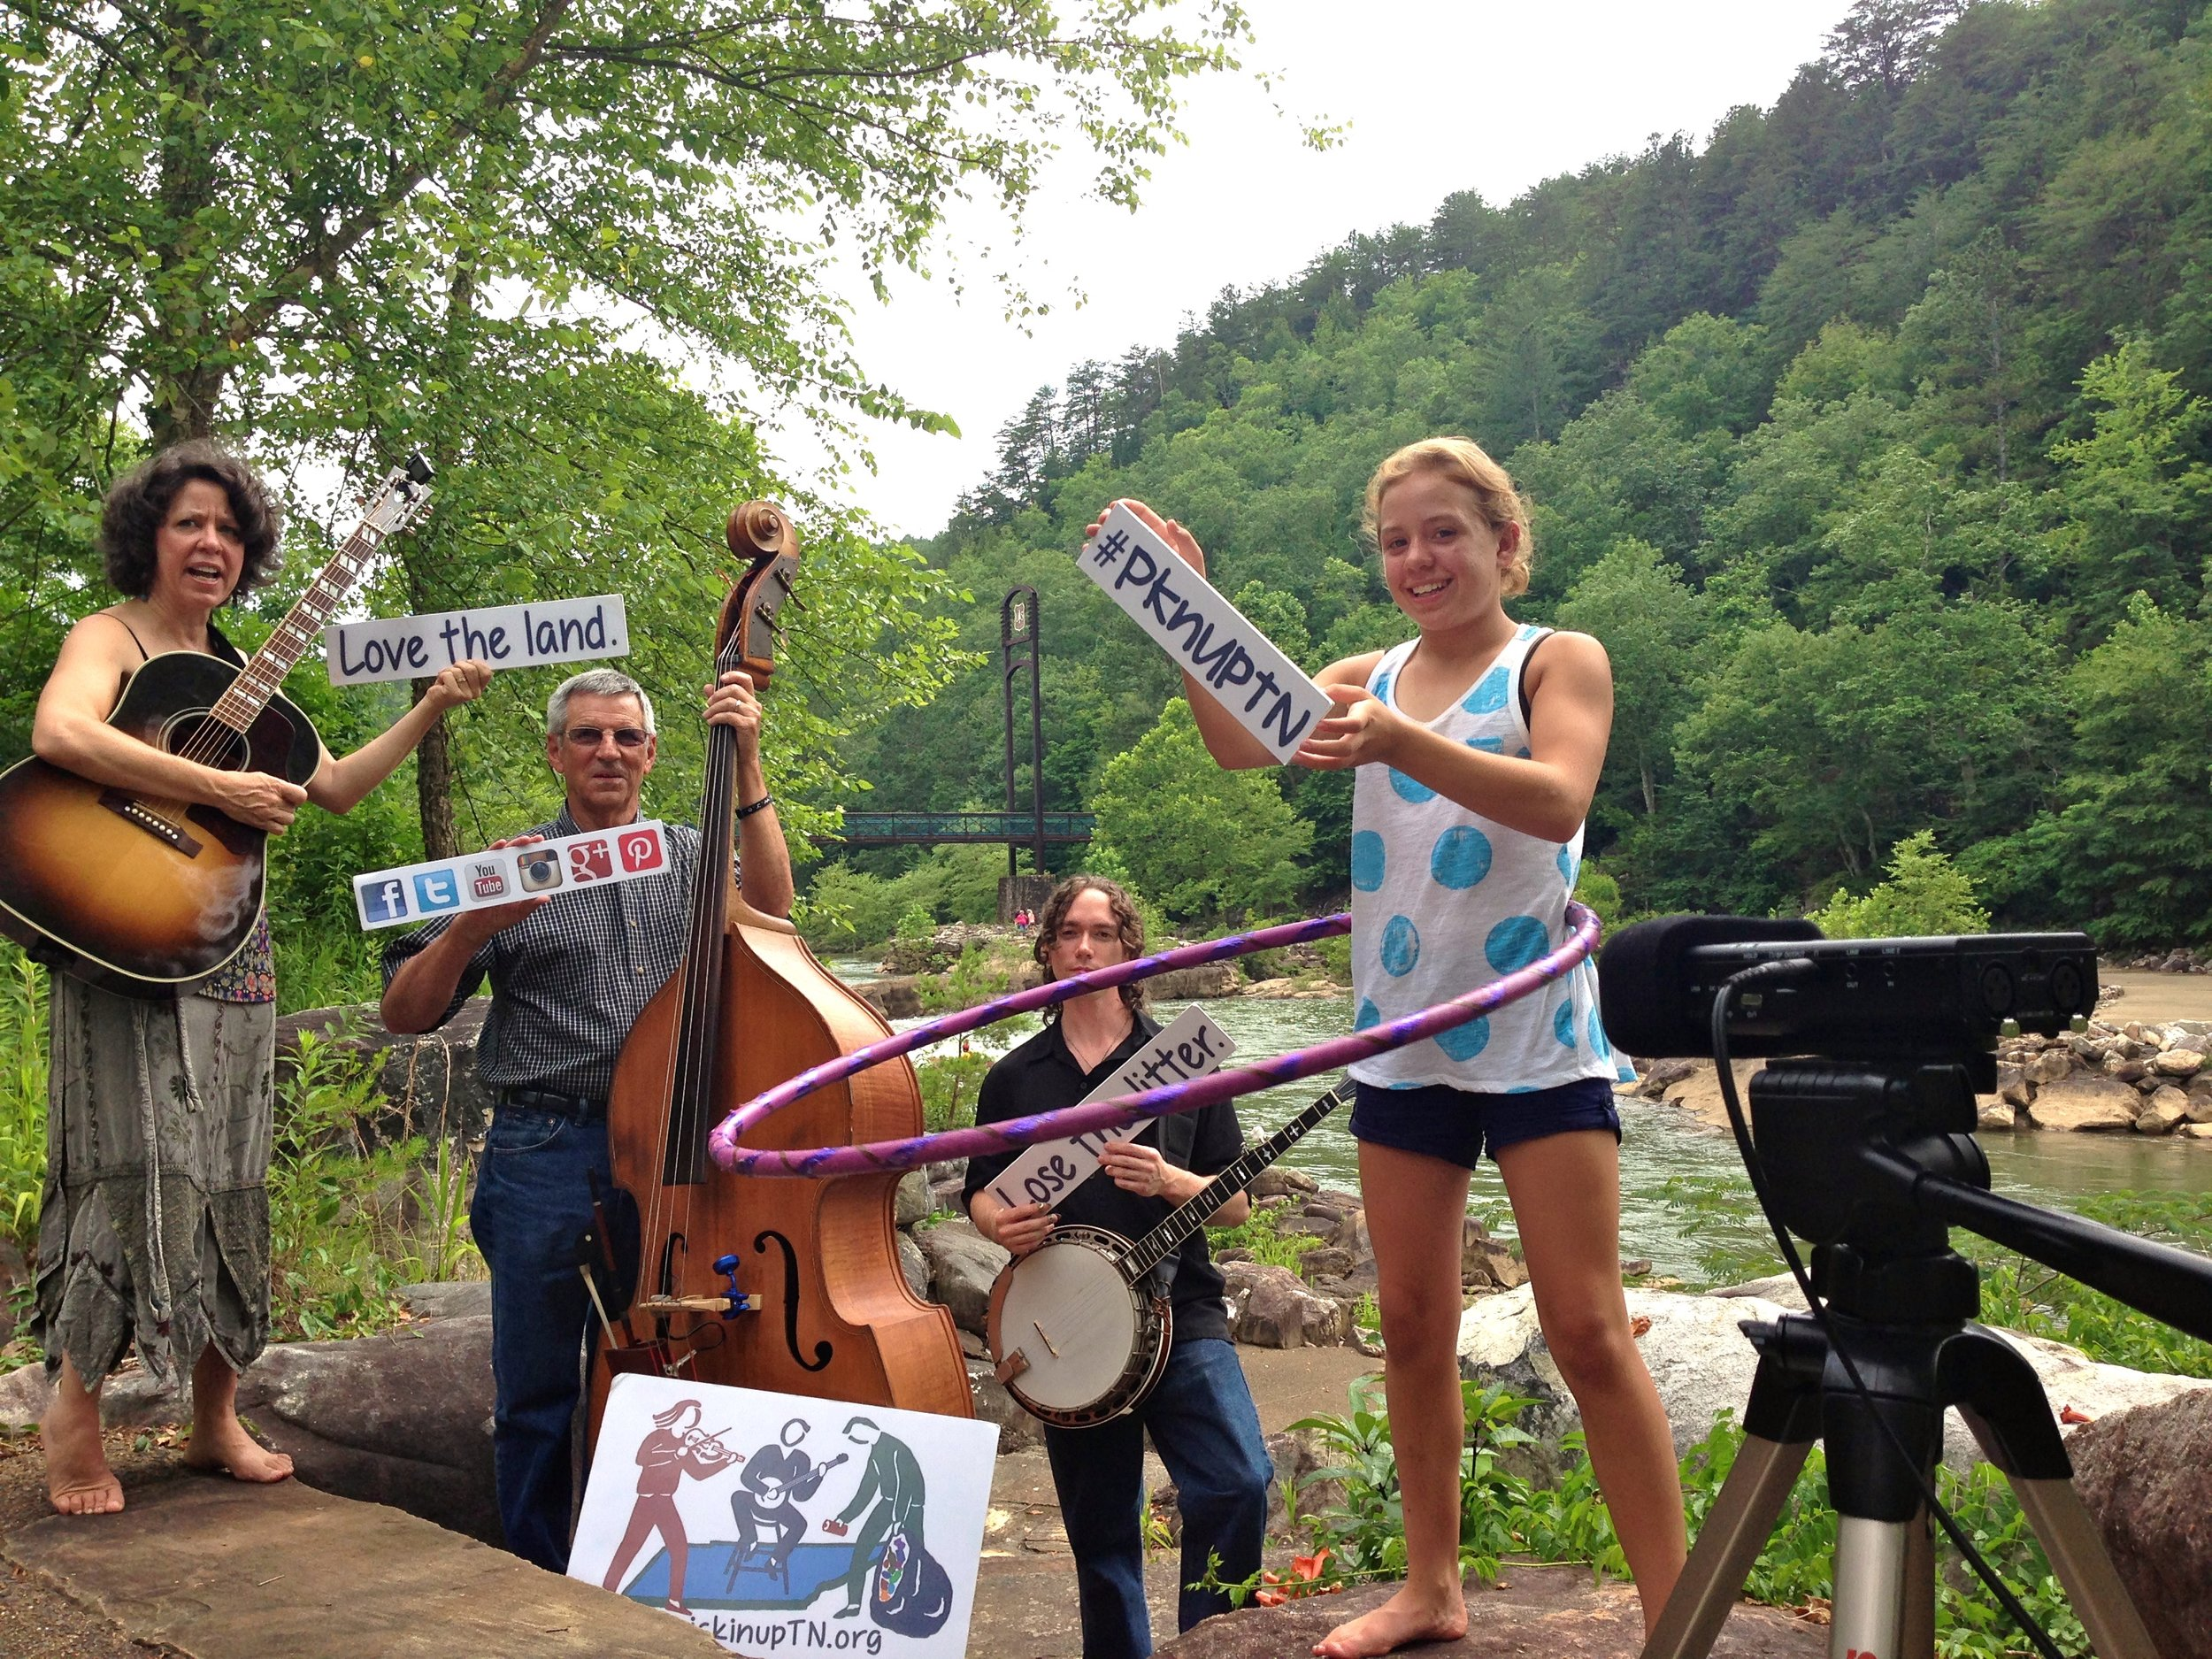 The next-to-last performance of the Pickin' Up Tennessee Tour: Playing on the Planet (Lisa Jacobi , Dennis Mixon, Jarrod Payne and Seu Jacobi on hoops) plays on the Ocoee River.